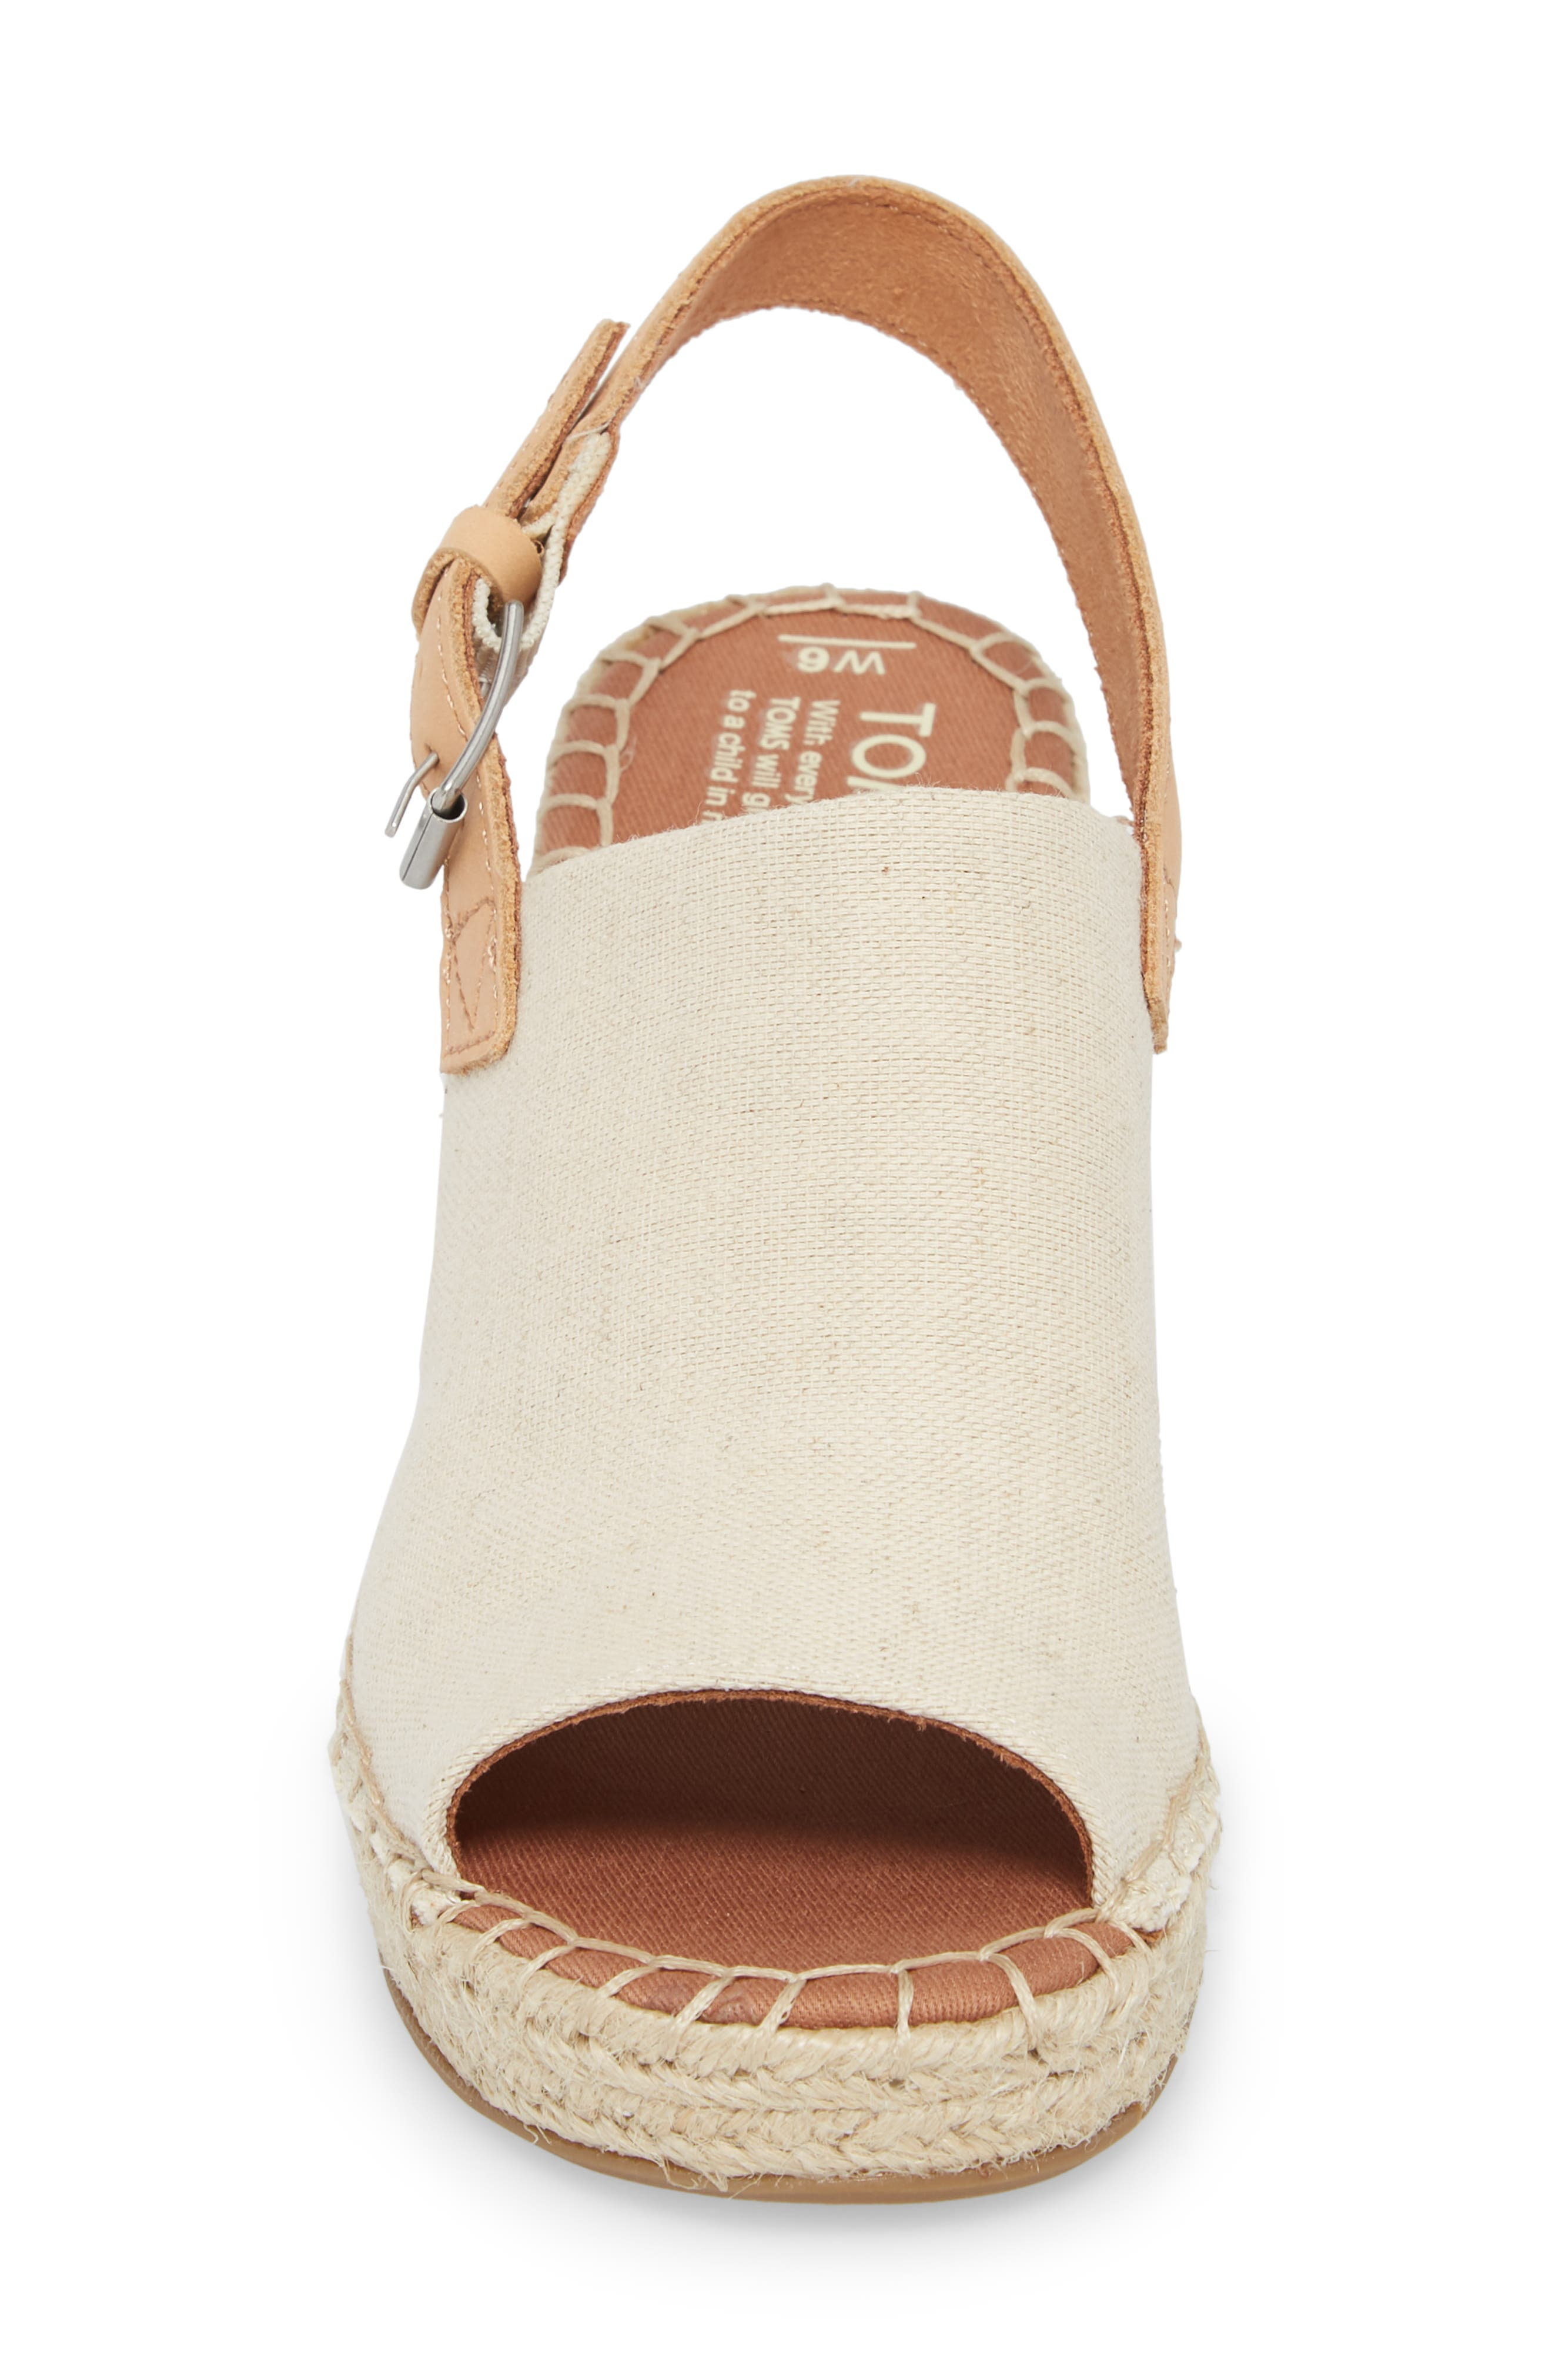 Monica Slingback Wedge,                             Alternate thumbnail 4, color,                             Natural Hemp/ Leather